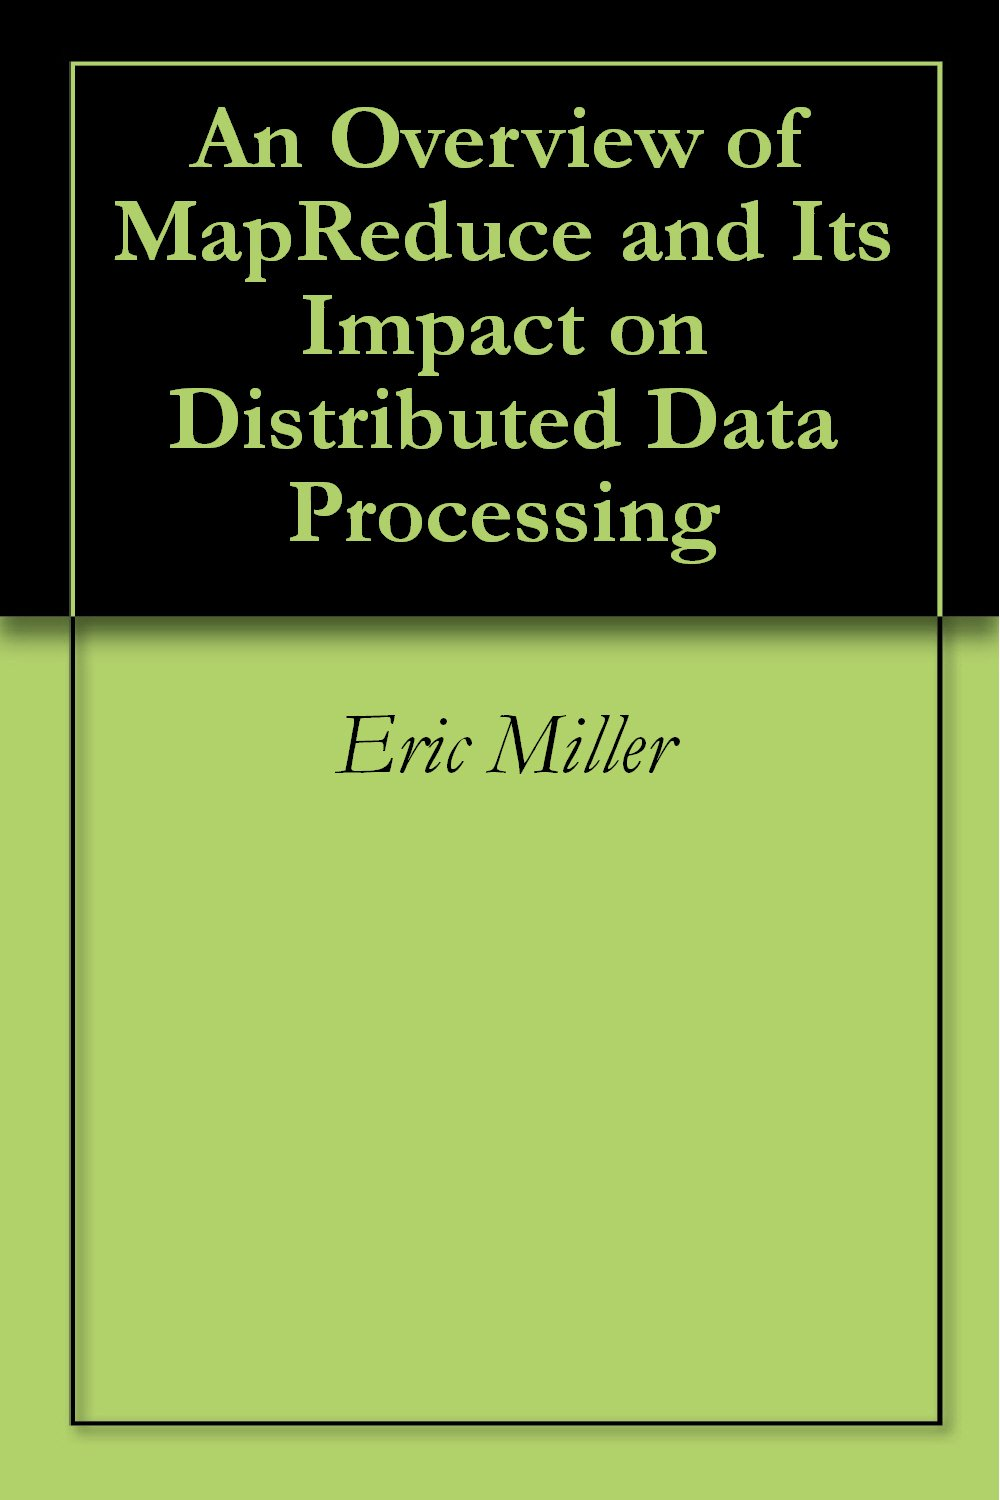 MapReduce  Impact Distributed Processing